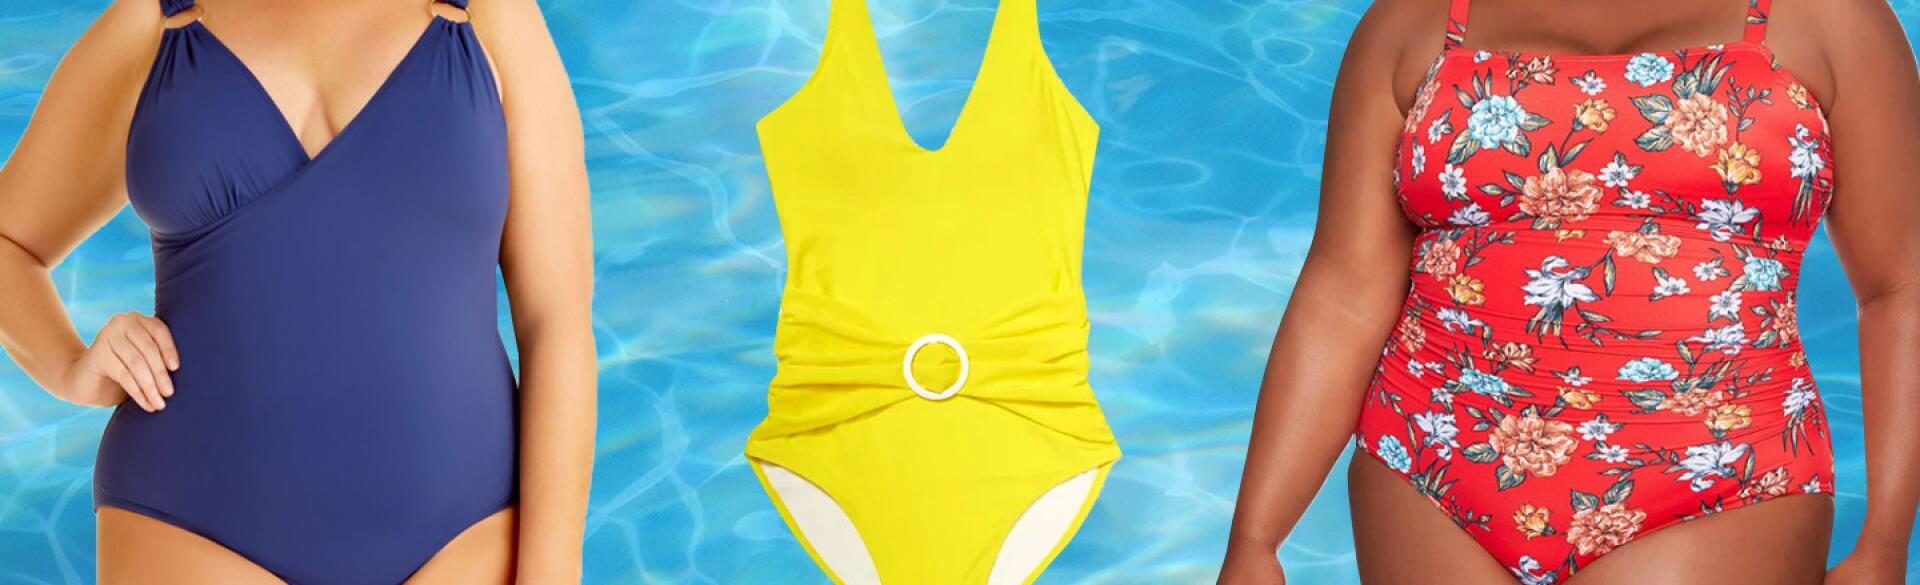 swimsuits-the-wrap_1440.jpg